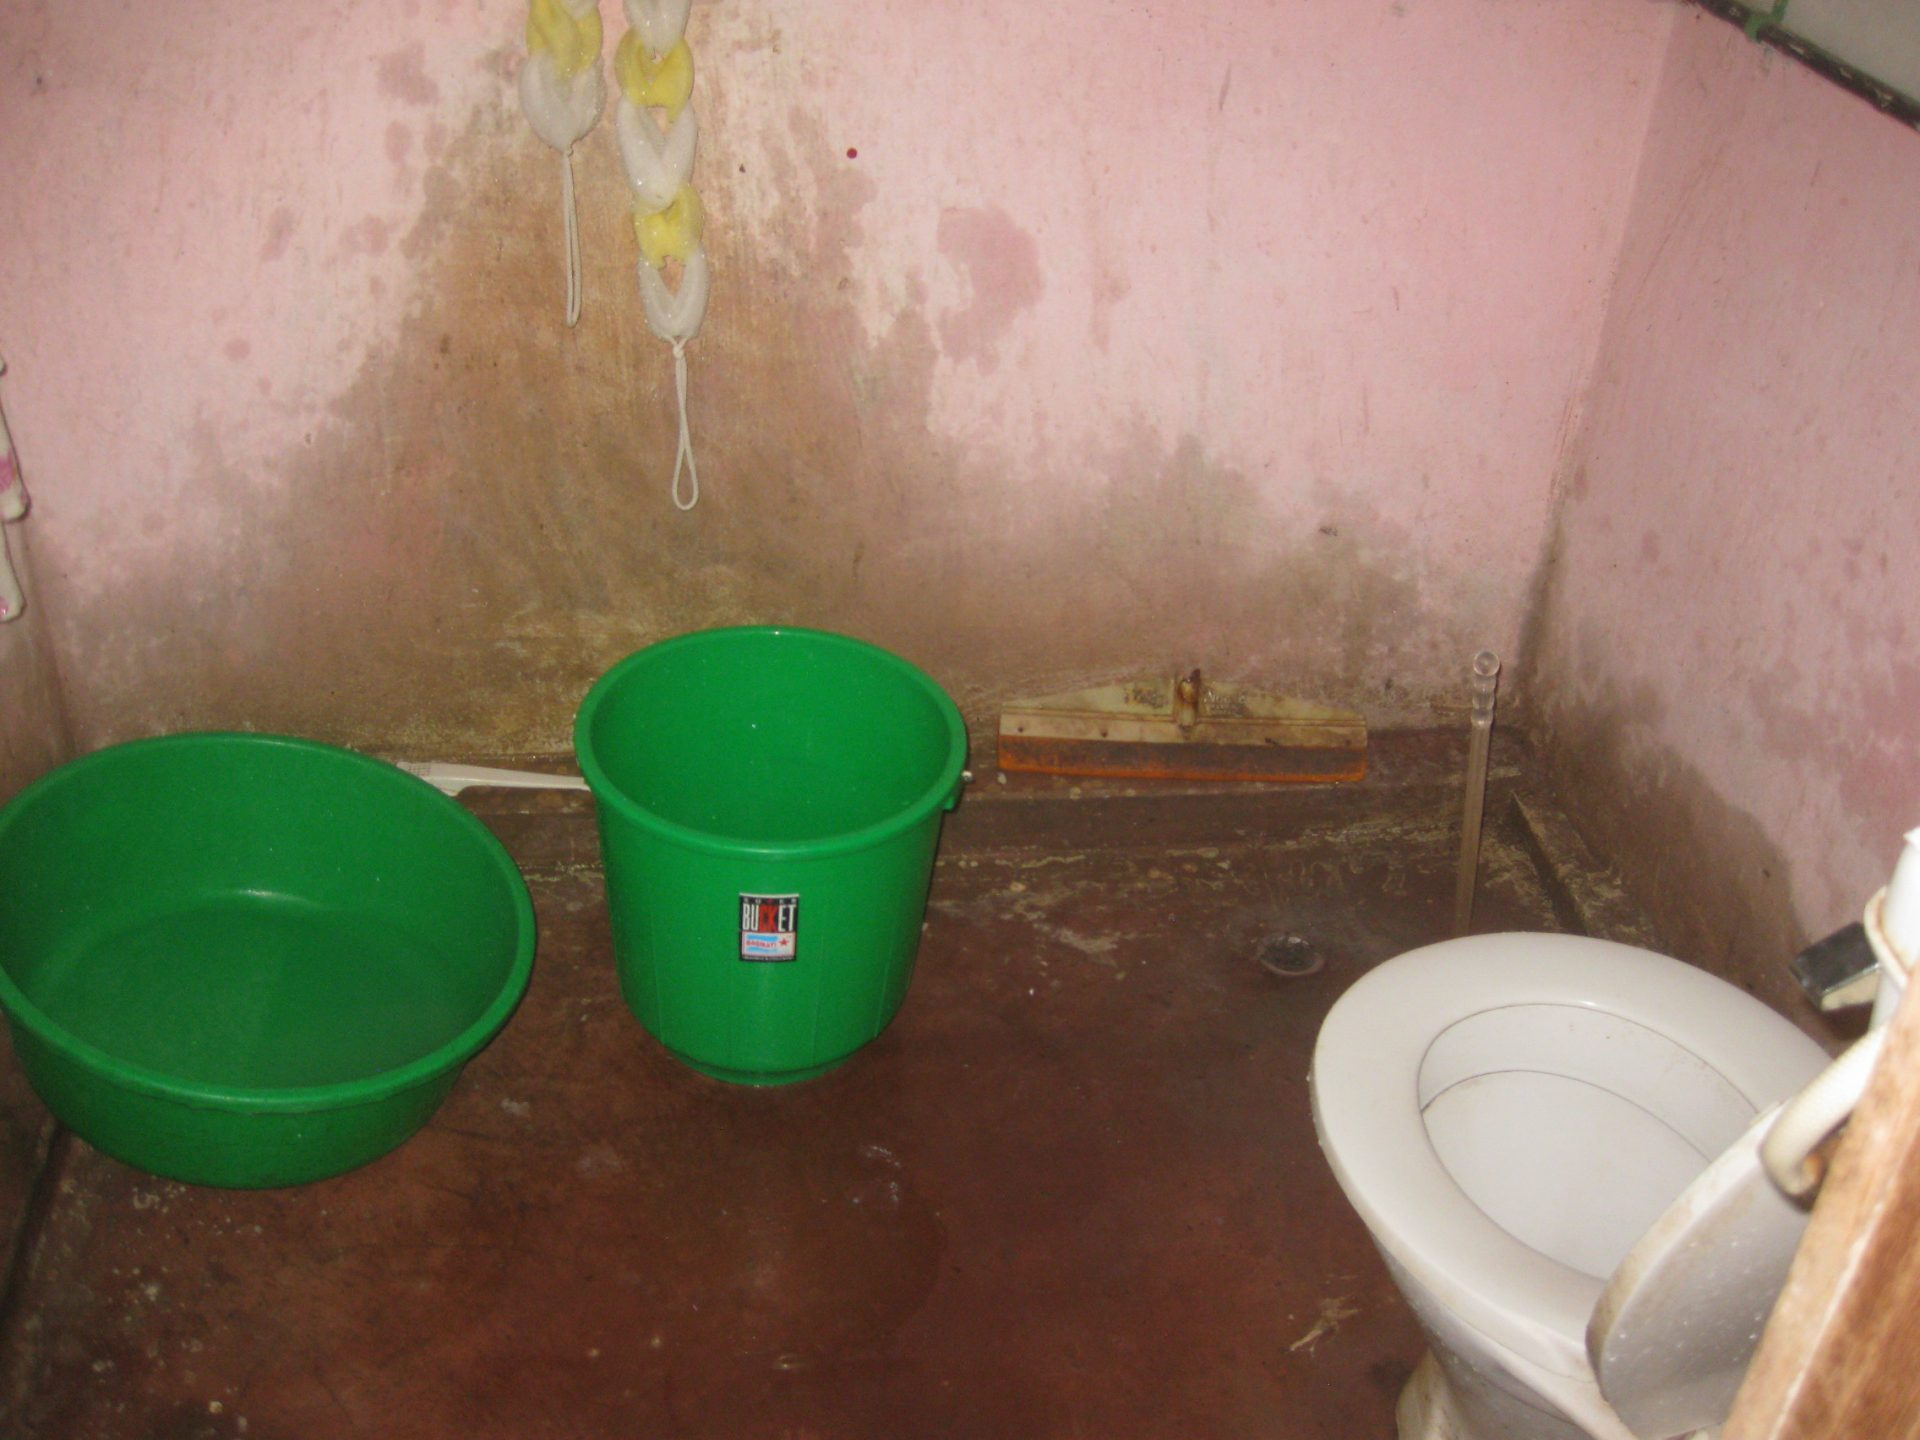 Bathing facilities near toilet